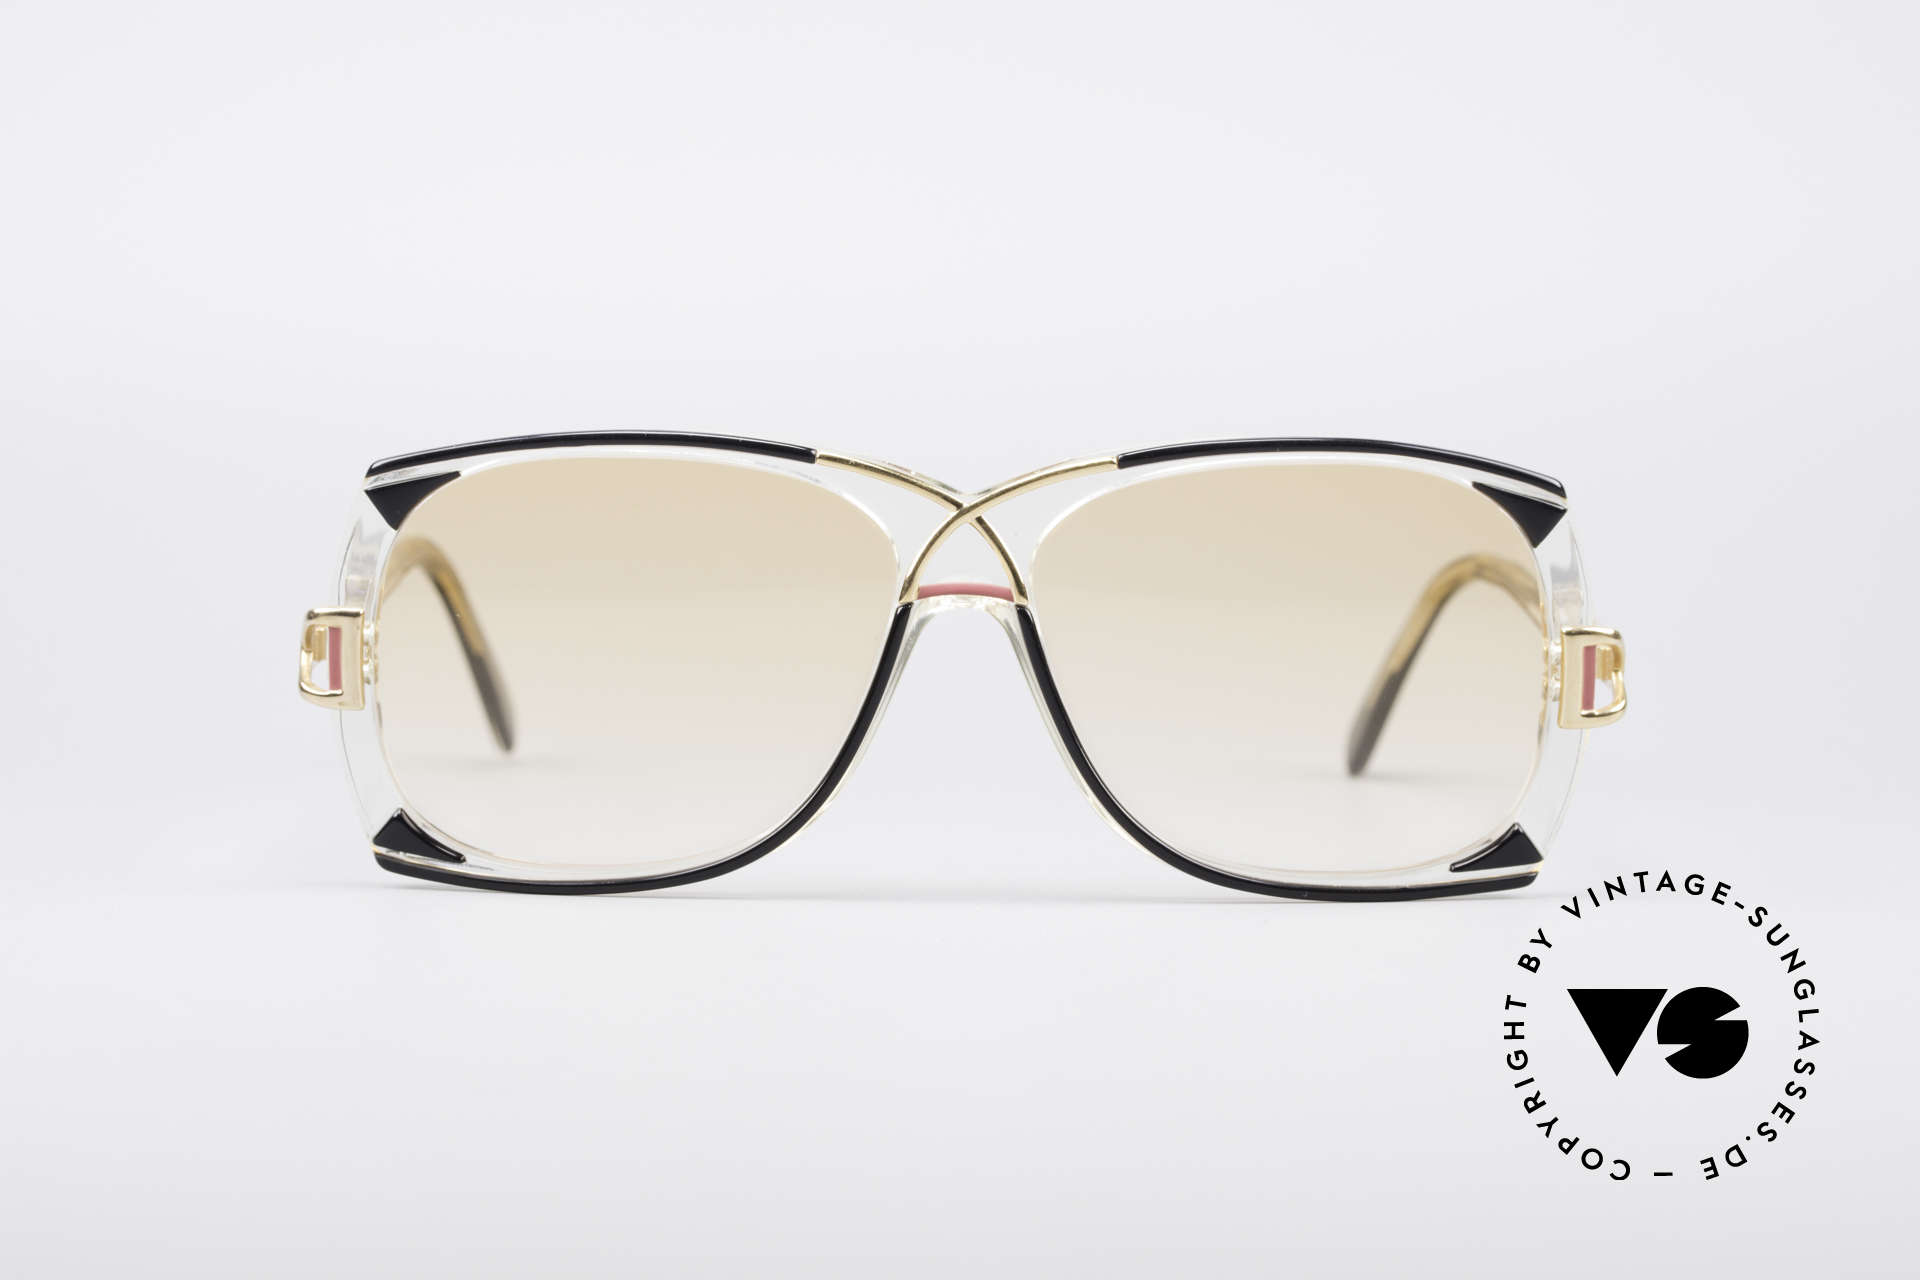 Cazal 193 Original 80's Shades, very peppy design by famous CAri ZALloni, Made for Women